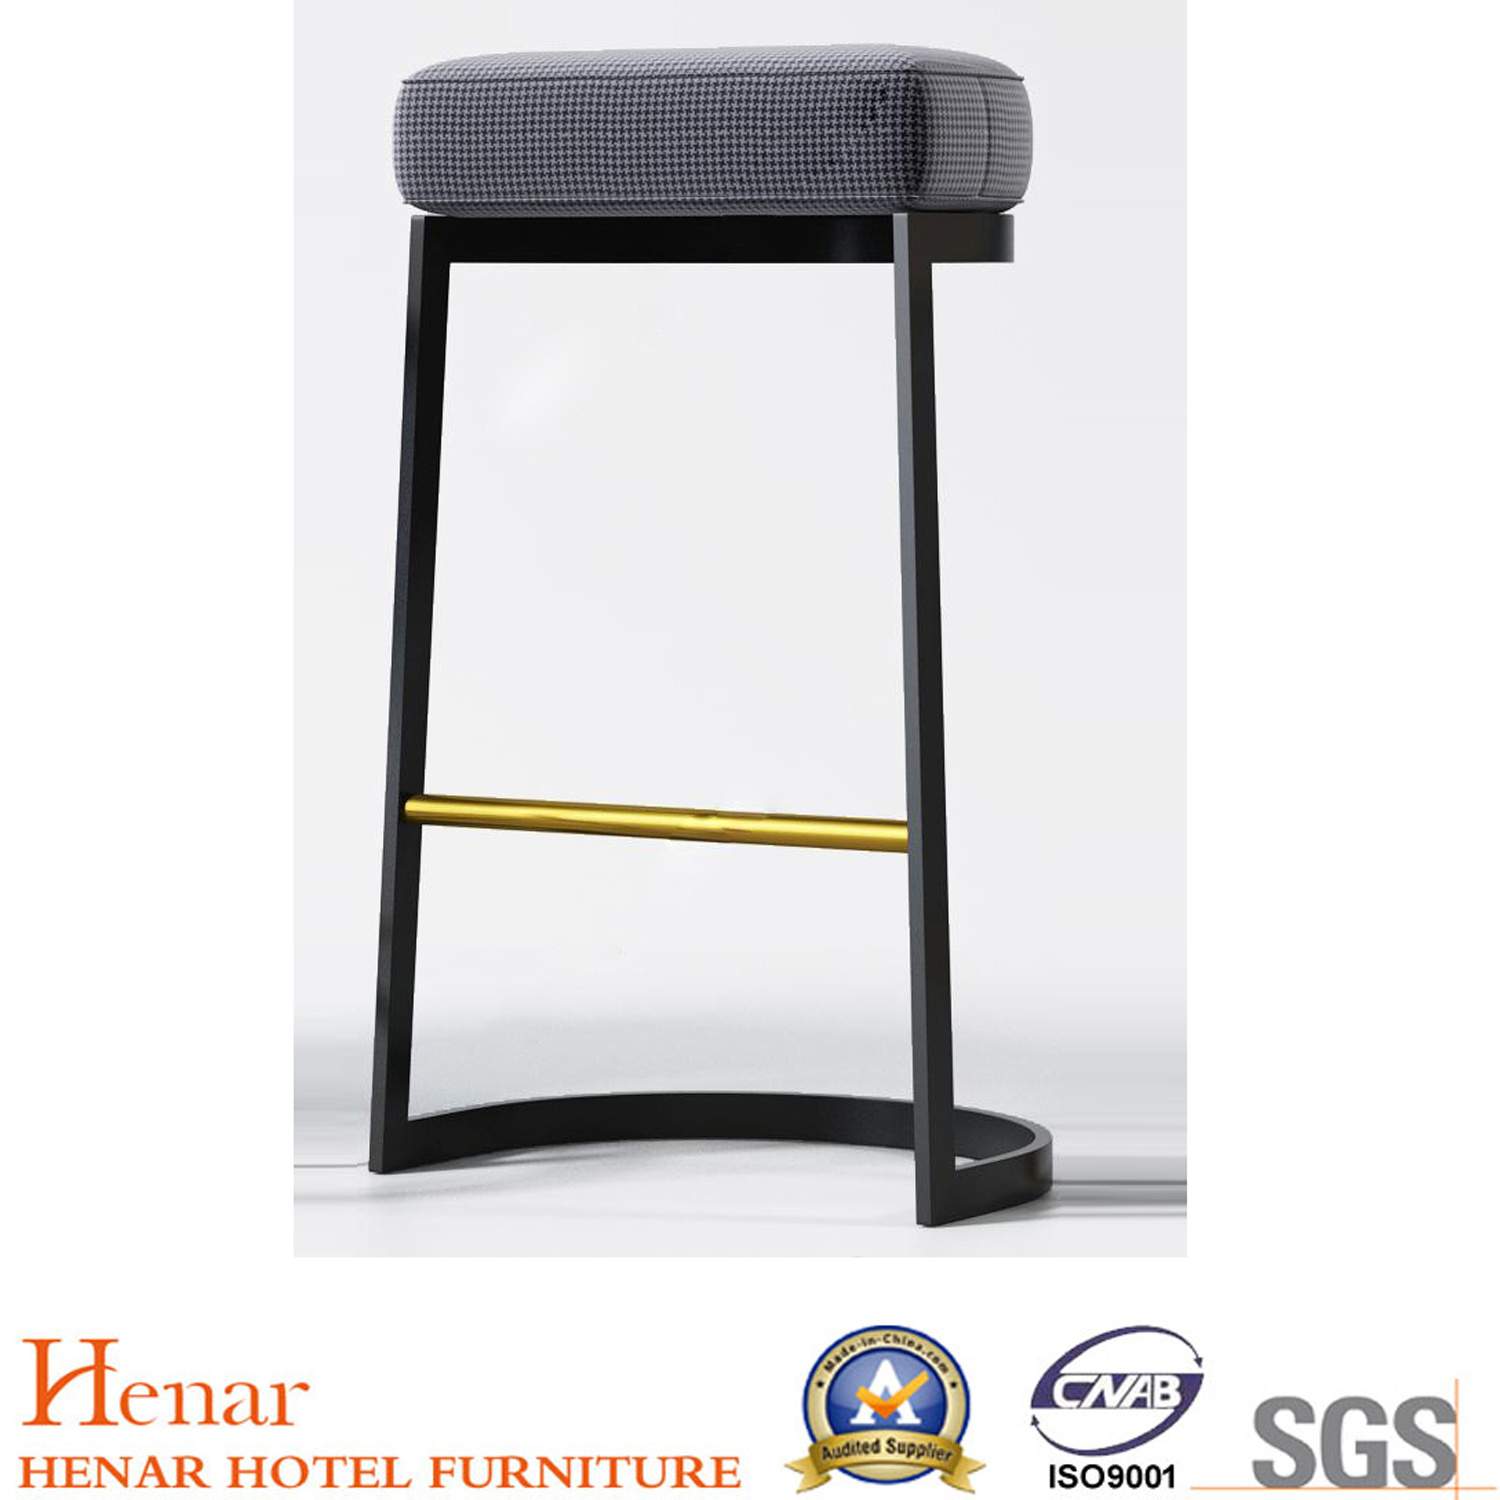 Sensational Hot Item Excellent Wooden Bar Stools With Golden Stainless Steel Footrail Pdpeps Interior Chair Design Pdpepsorg